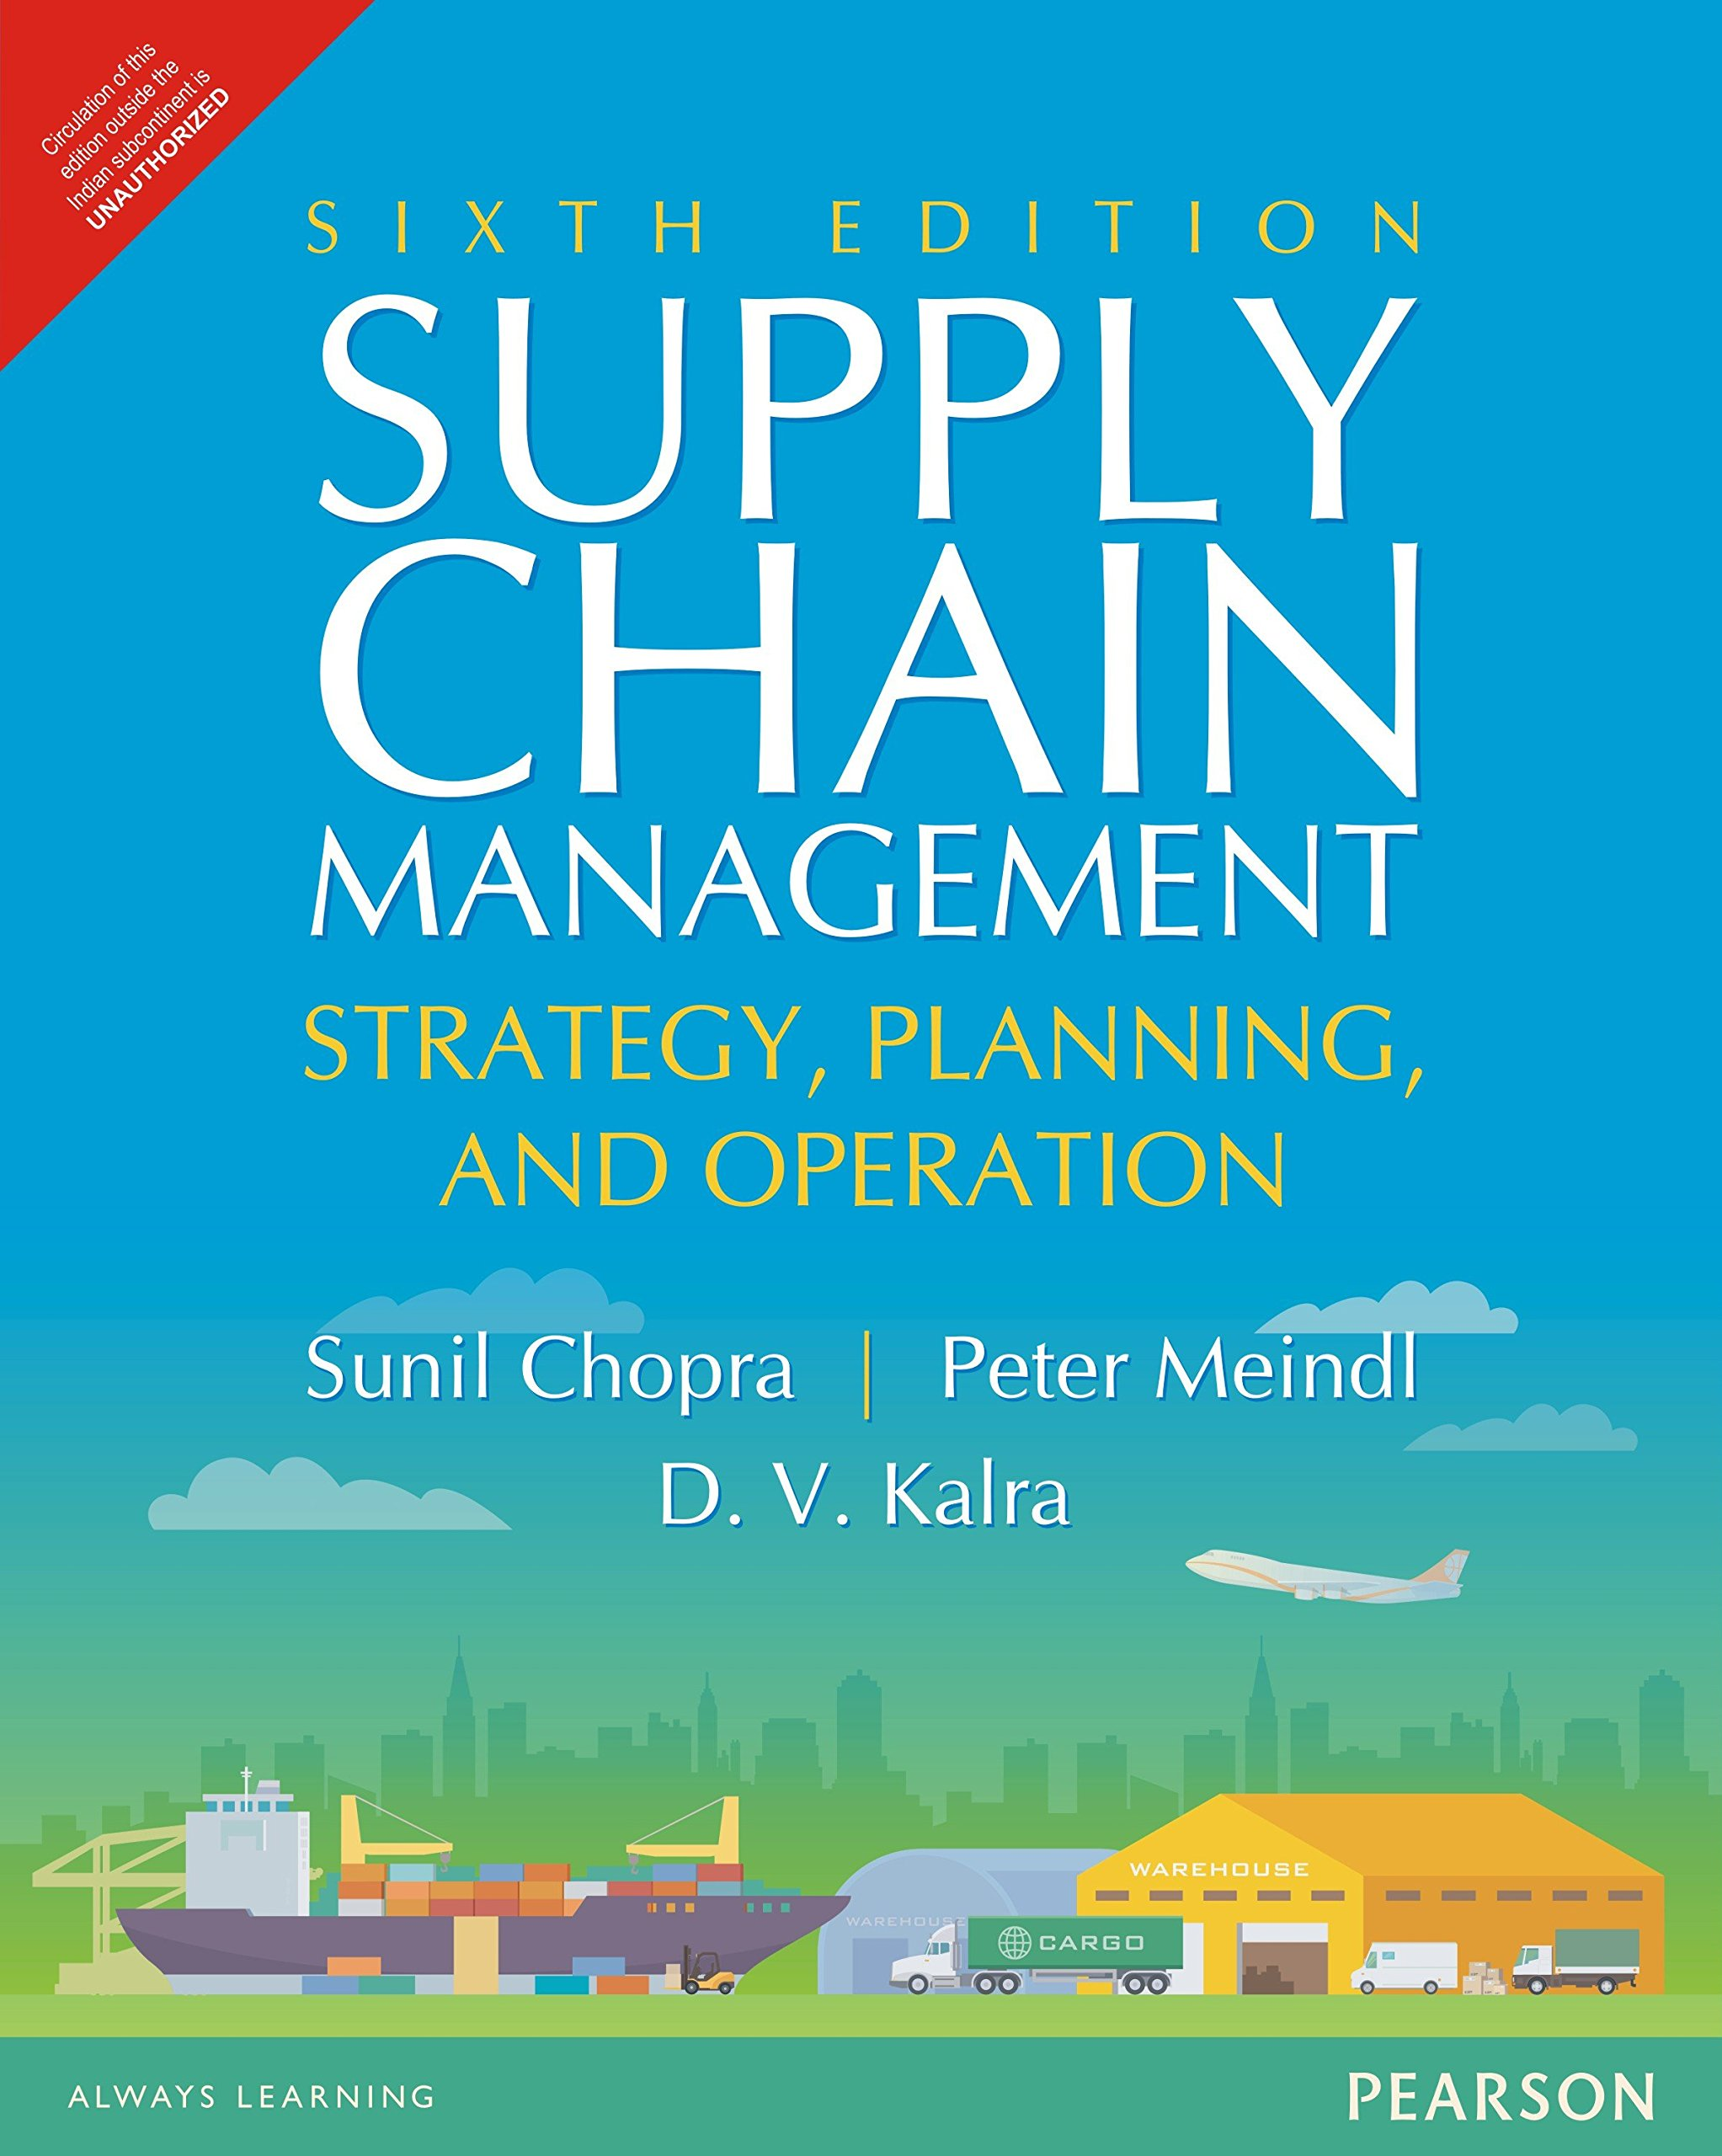 SUPPLY CHAIN MANAGEMENT, 6TH EDITION